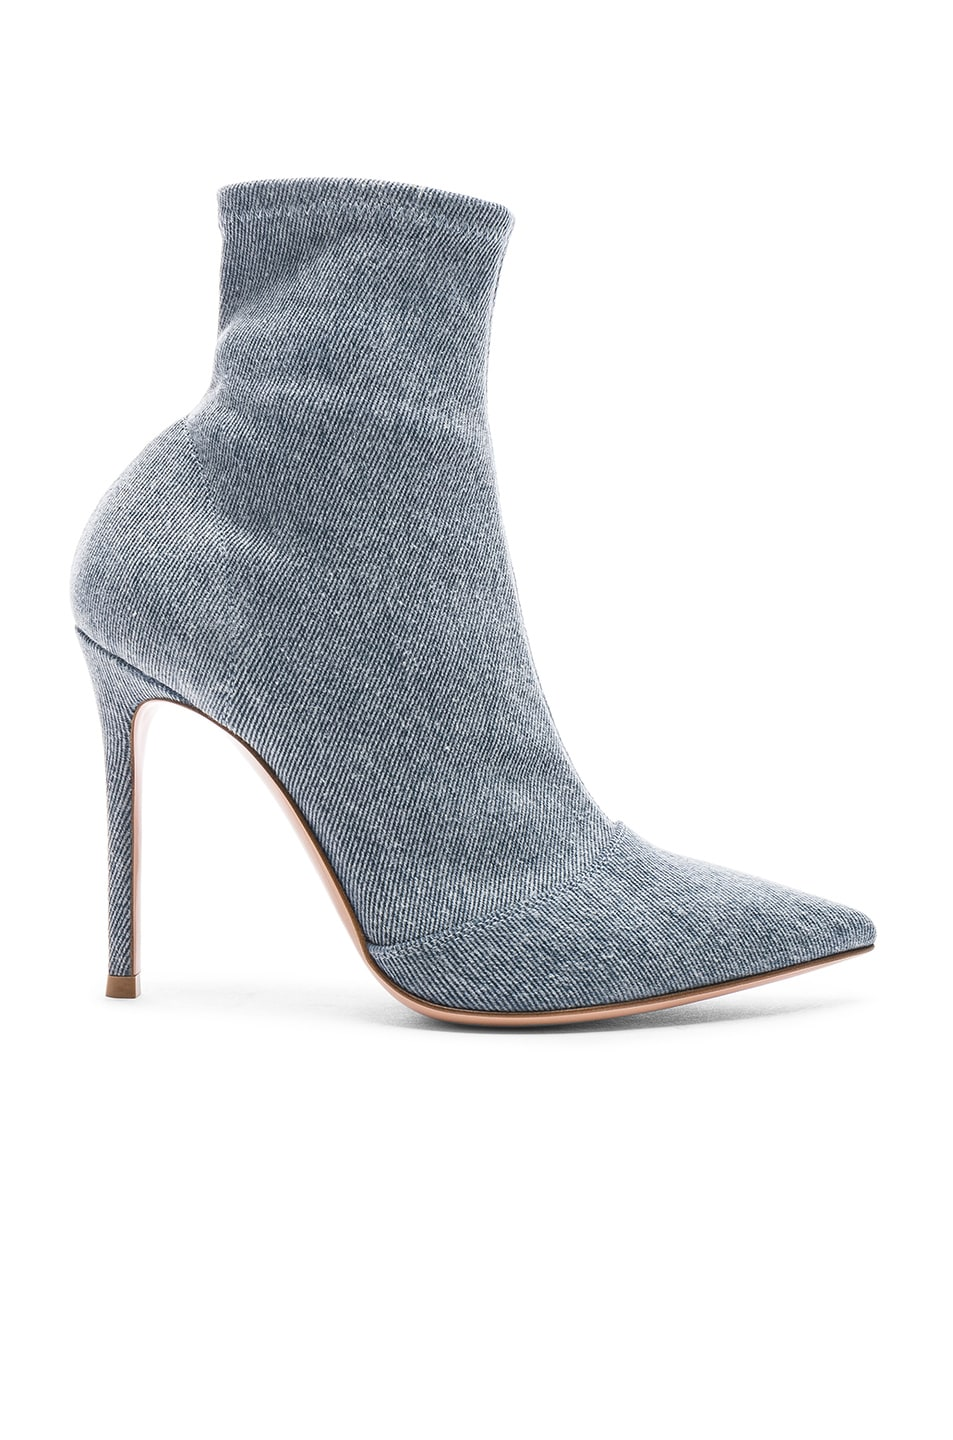 Image 1 of Gianvito Rossi Denim Stretch Ankle Booties in Stonewash